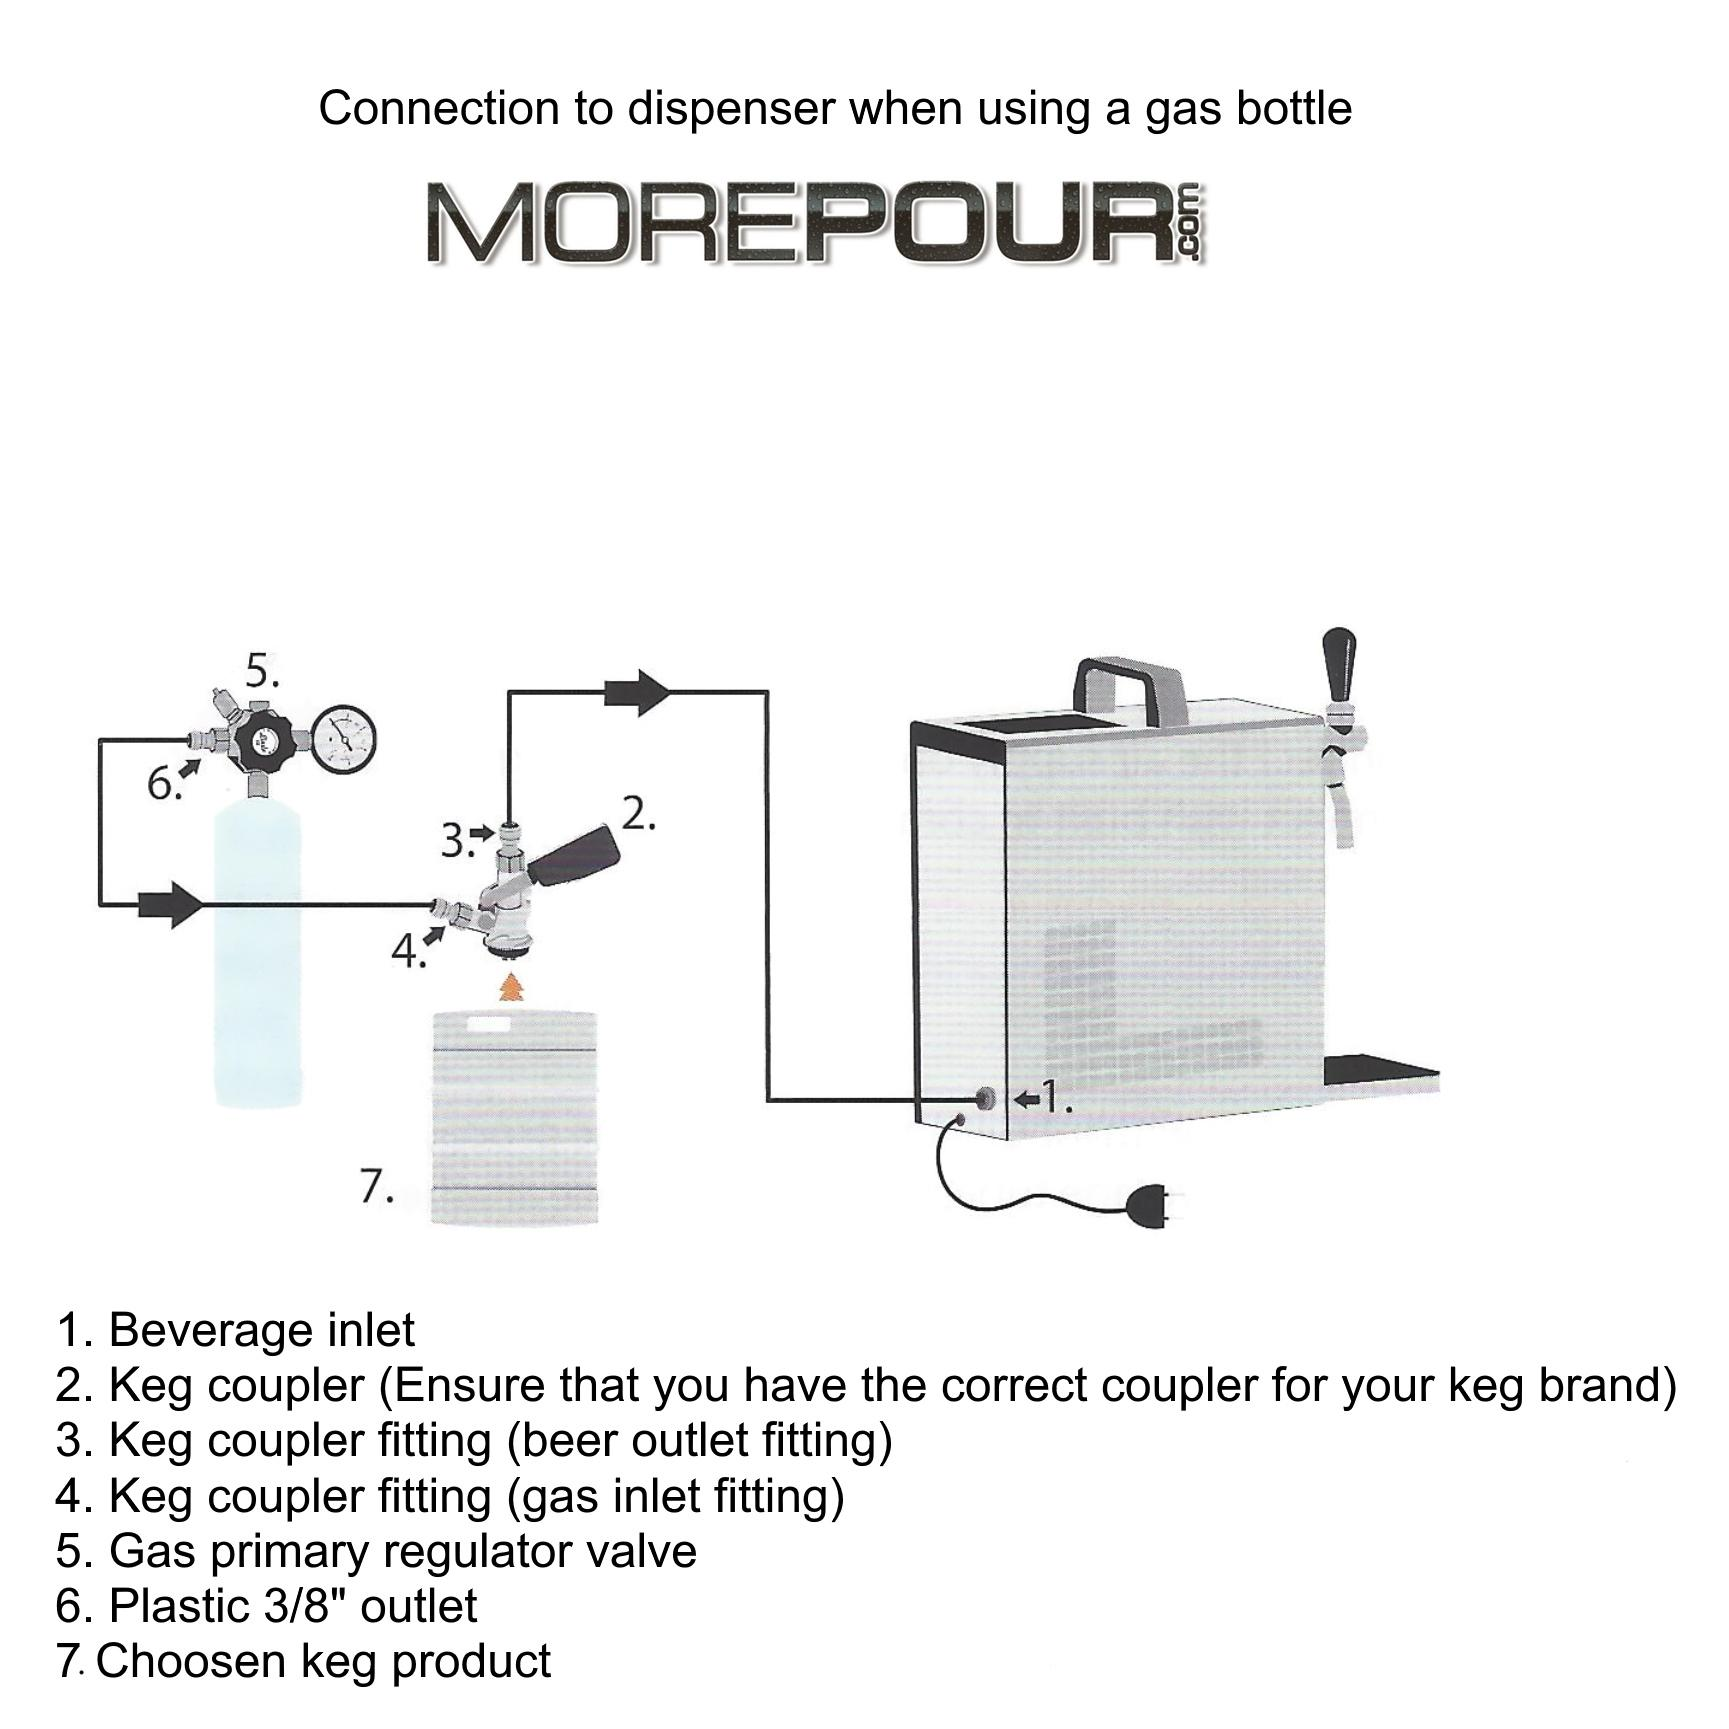 Connect CO2 to a Lindr dispenser